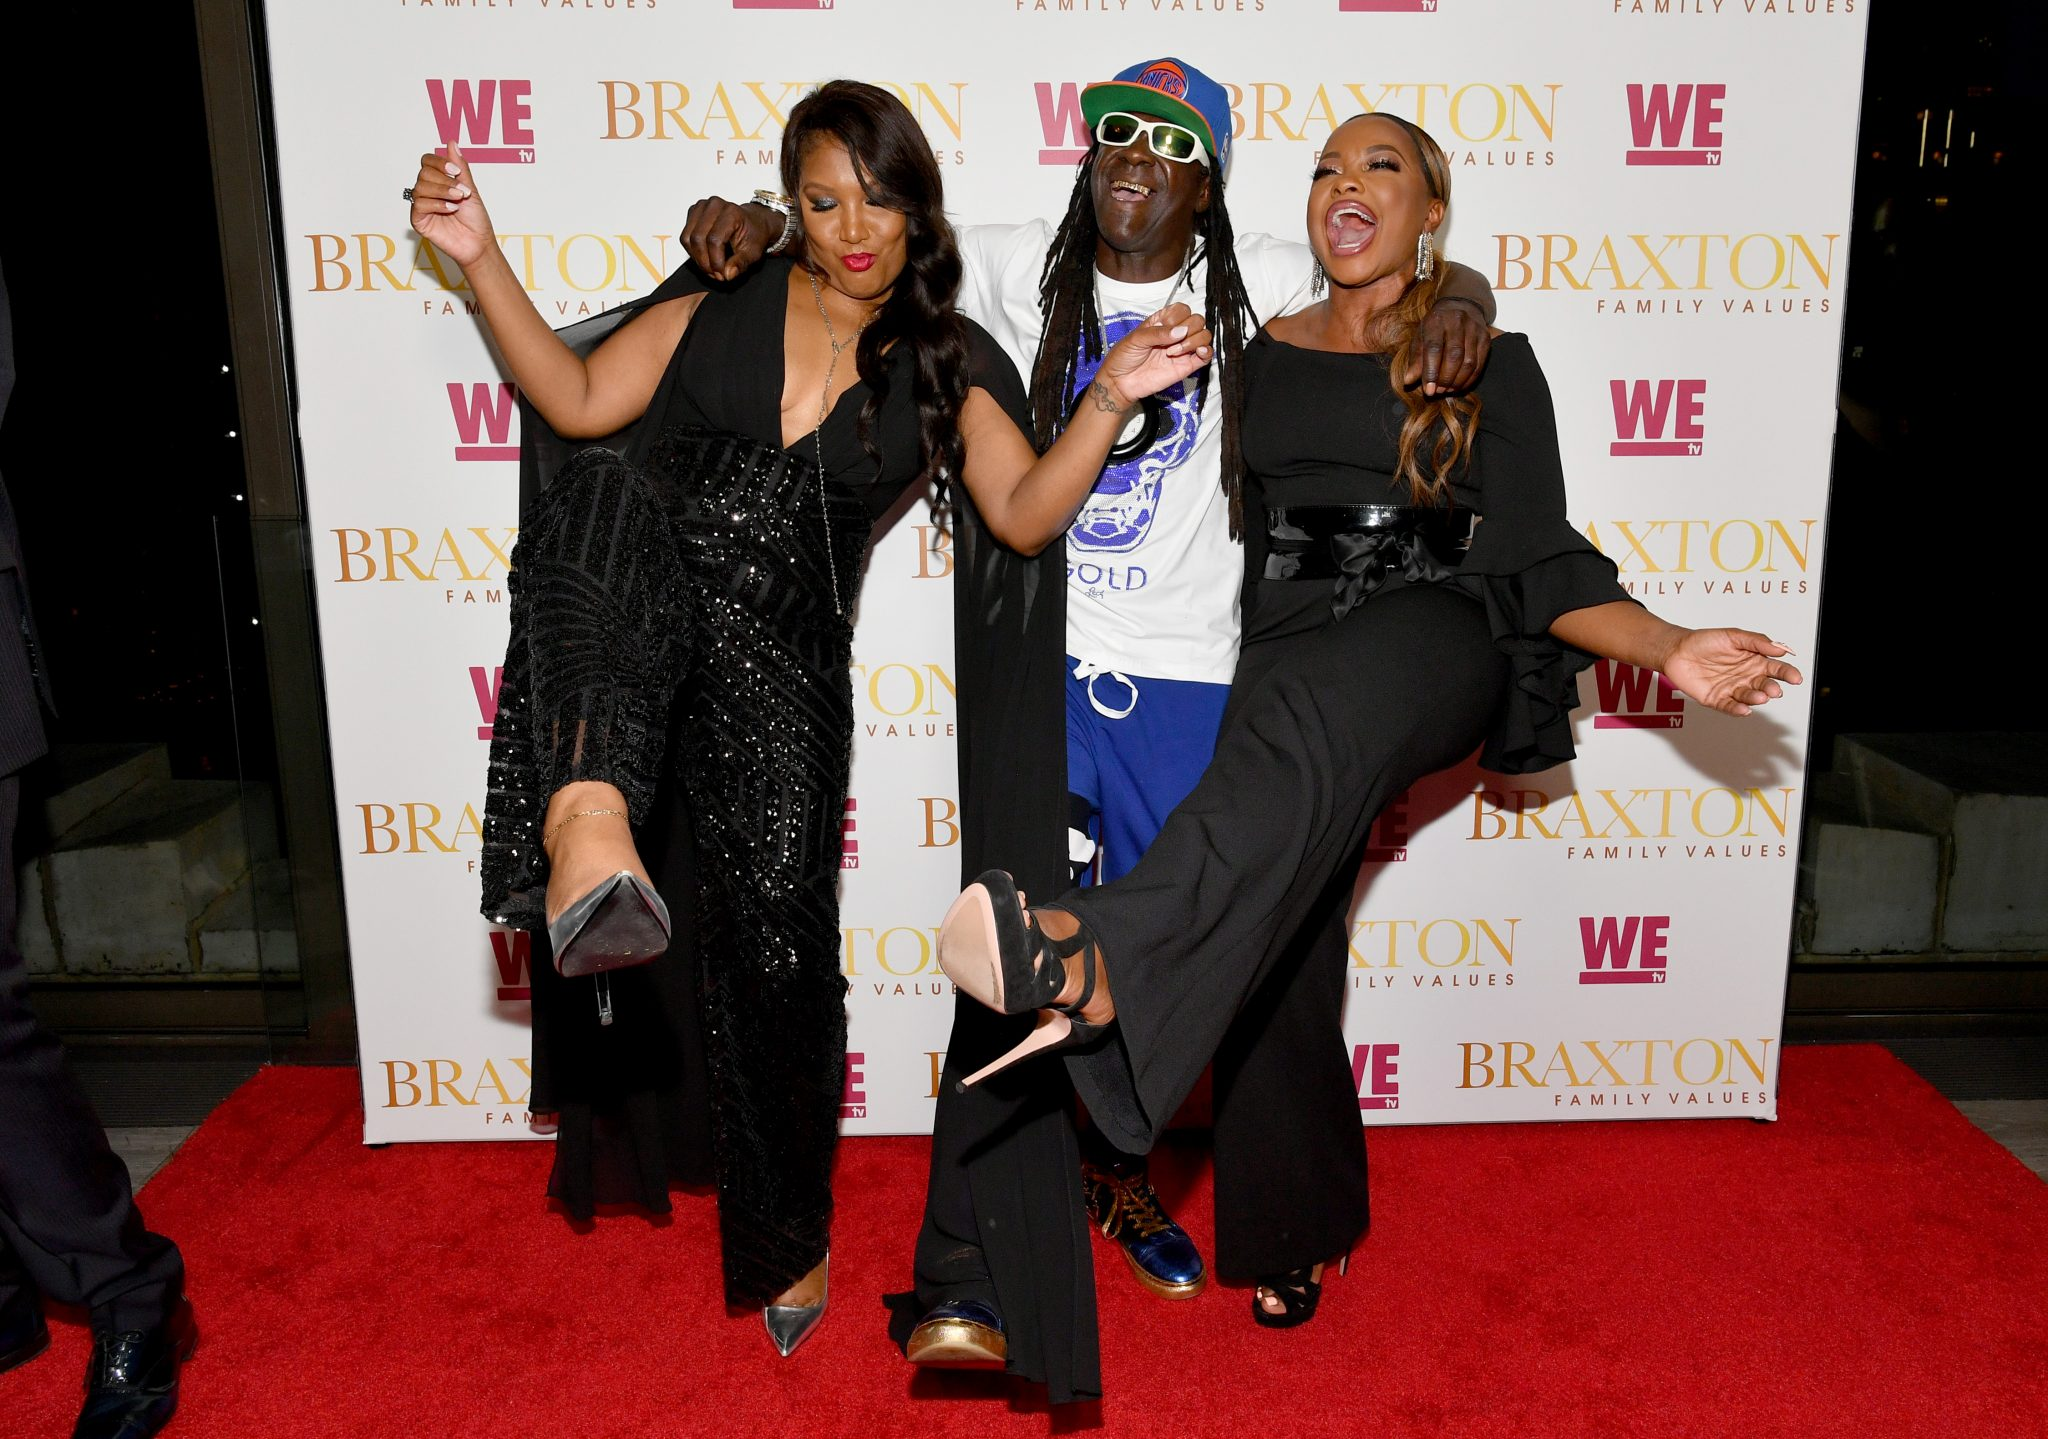 """Traci Braxton, Flavor Flav, Real Housewives, Ice-T & Coco And More Celebrate WE tv's """"Braxton Family Values"""" Season 6 Return in NYC"""